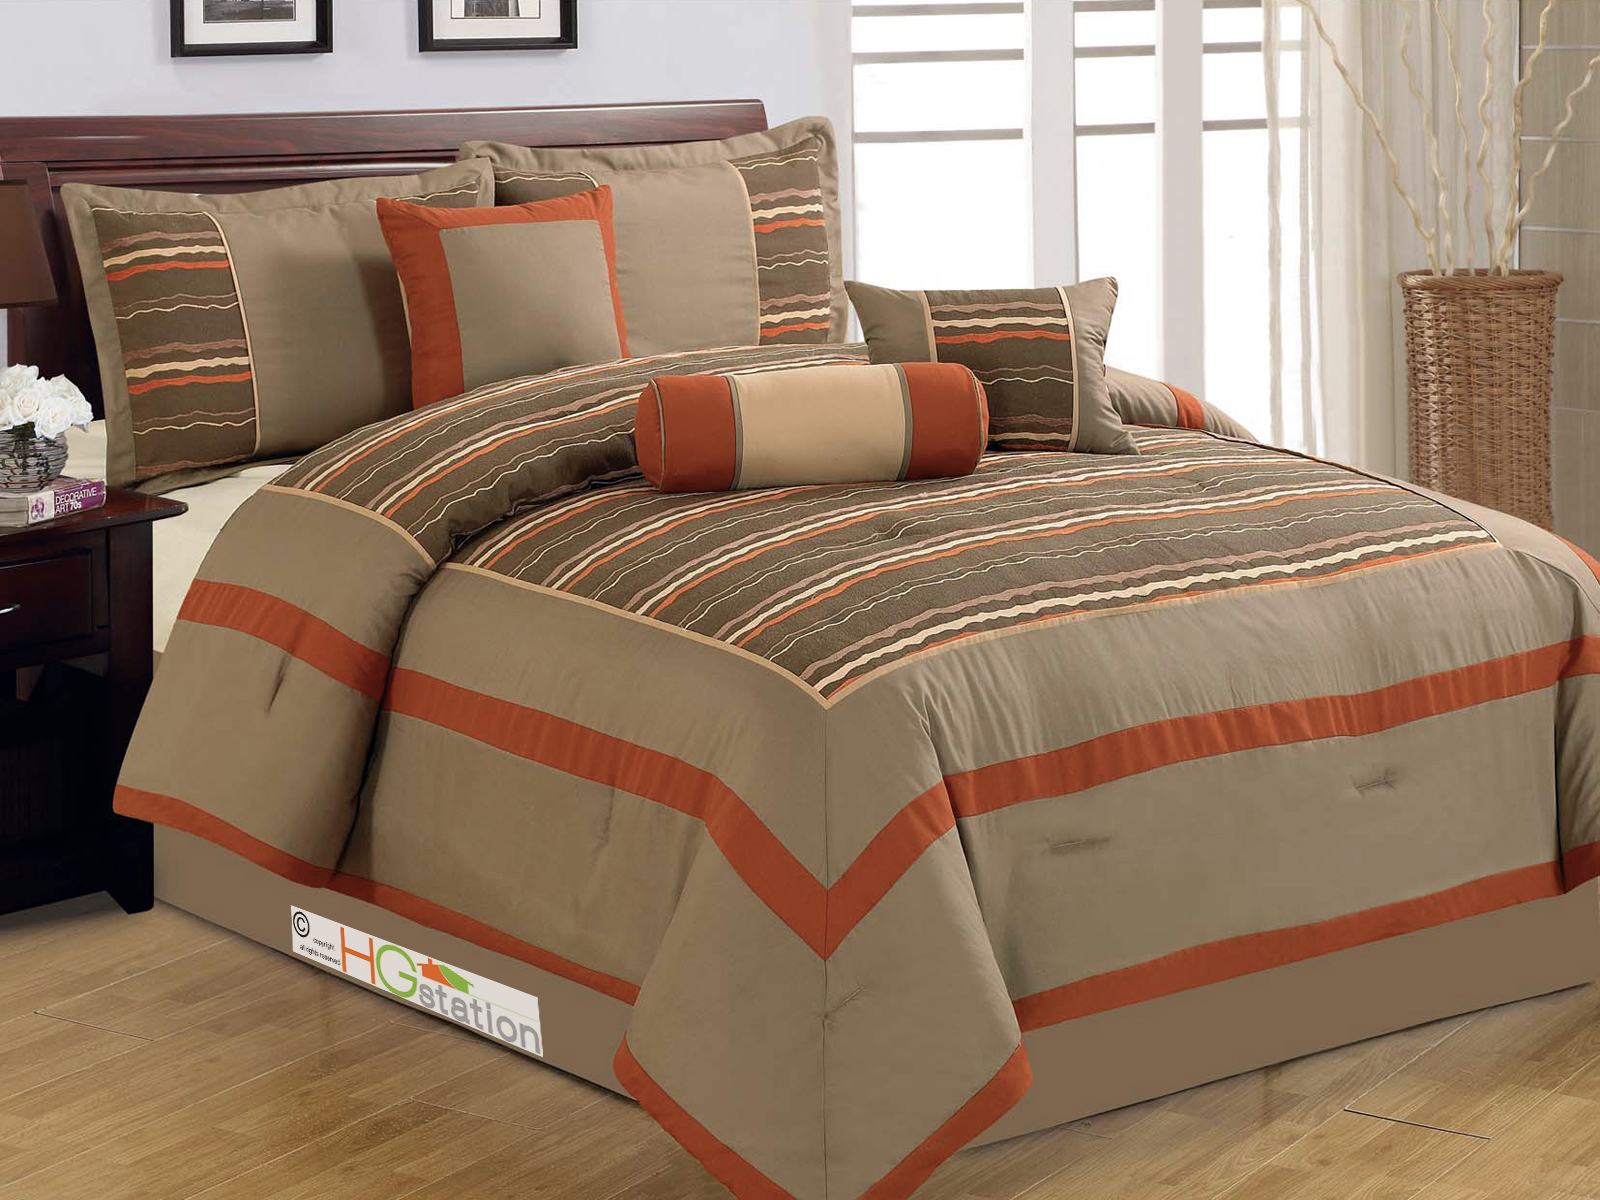 bed reviews croscill piece pdx wayfair rust reversible comforter fashions set home bath nadalia